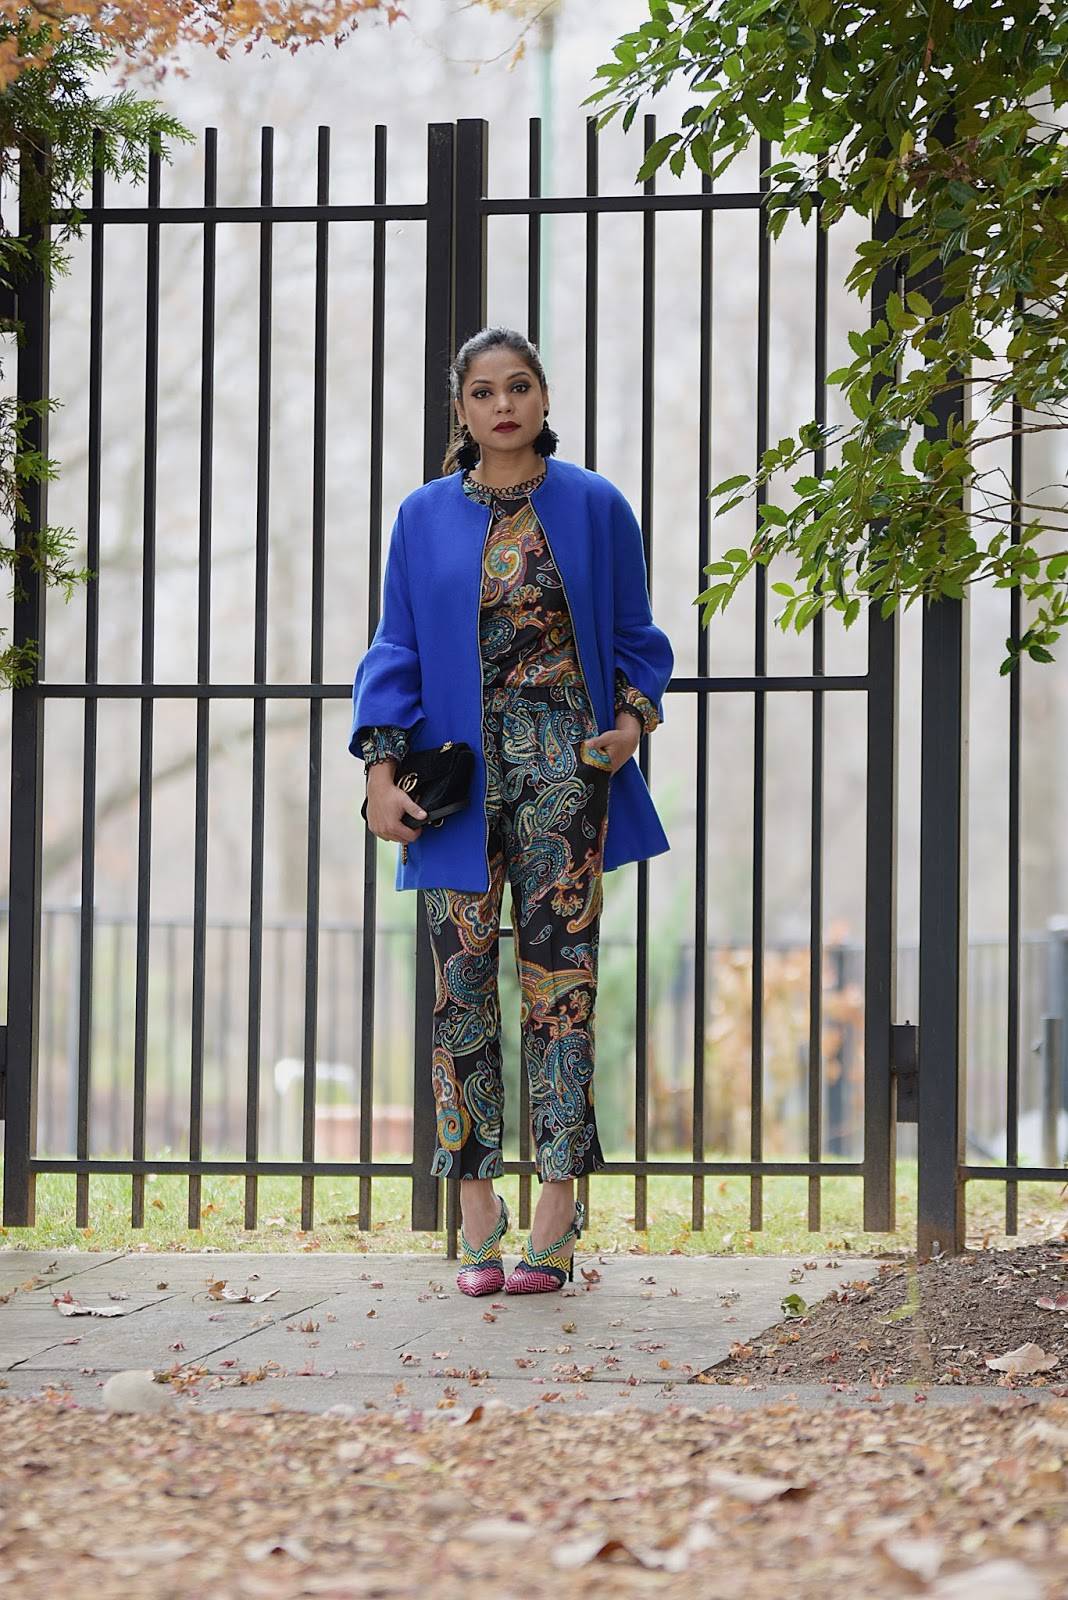 how to wear paisley in winter, pajama wear, coordinates pant and trousers, fashion, street style, blue bell sleevs coat, feather earrings, chevron printed heels, dark lips, gucci marmont bag